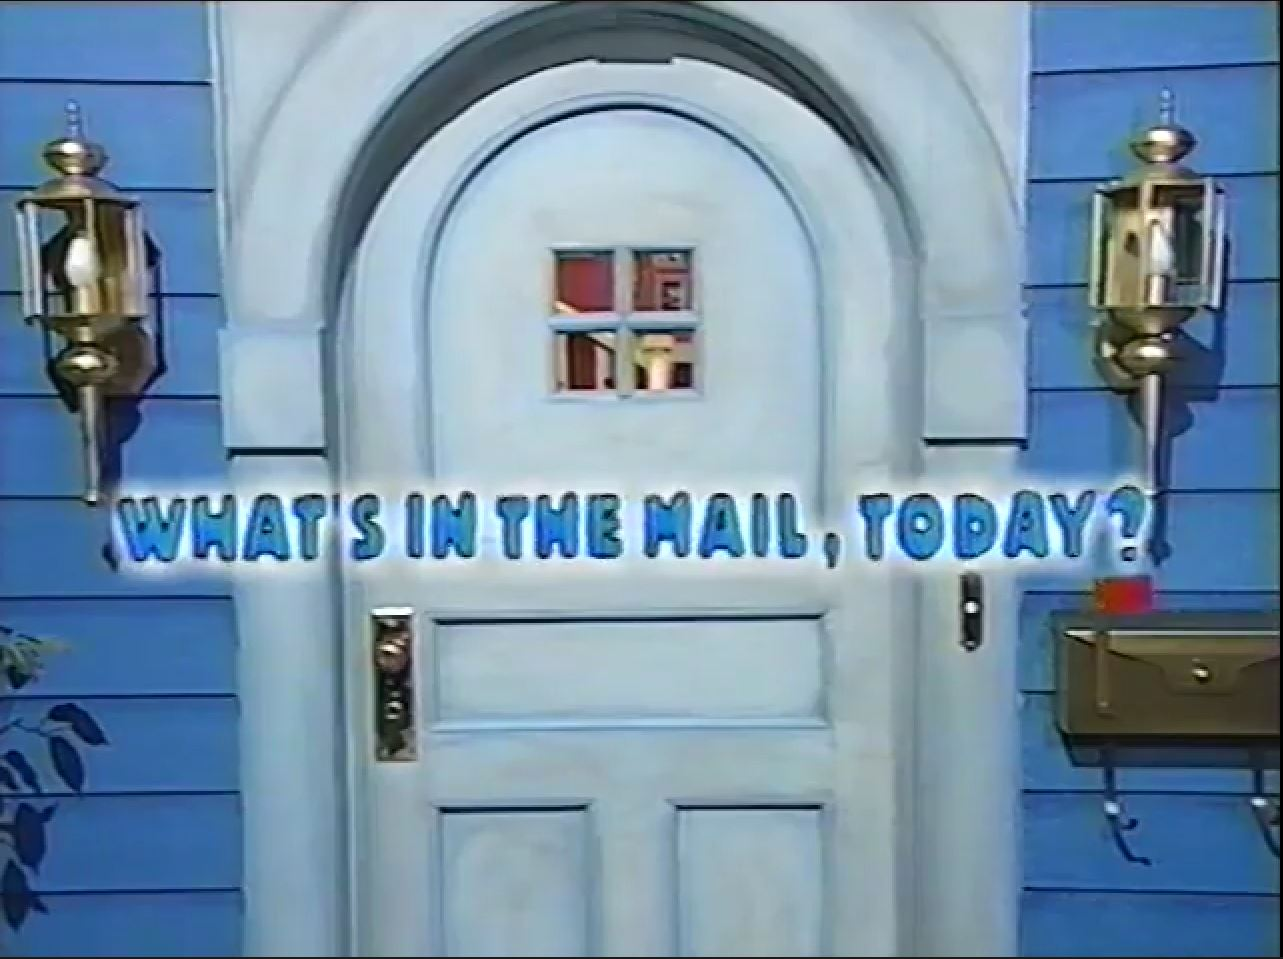 File:What's in the Mail, Today?.jpg